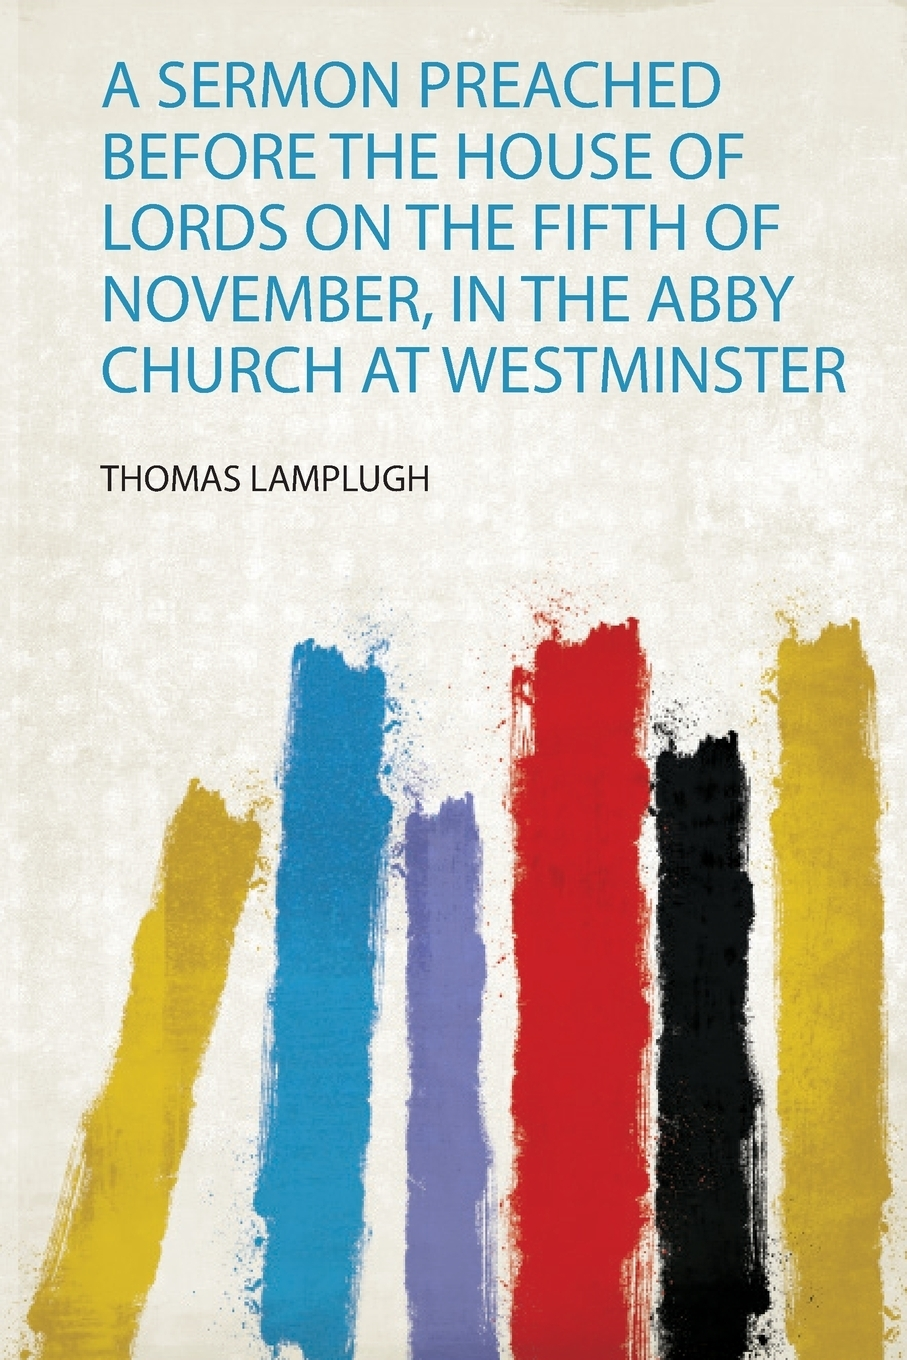 все цены на A Sermon Preached Before the House of Lords on the Fifth of November, in the Abby Church at Westminster онлайн